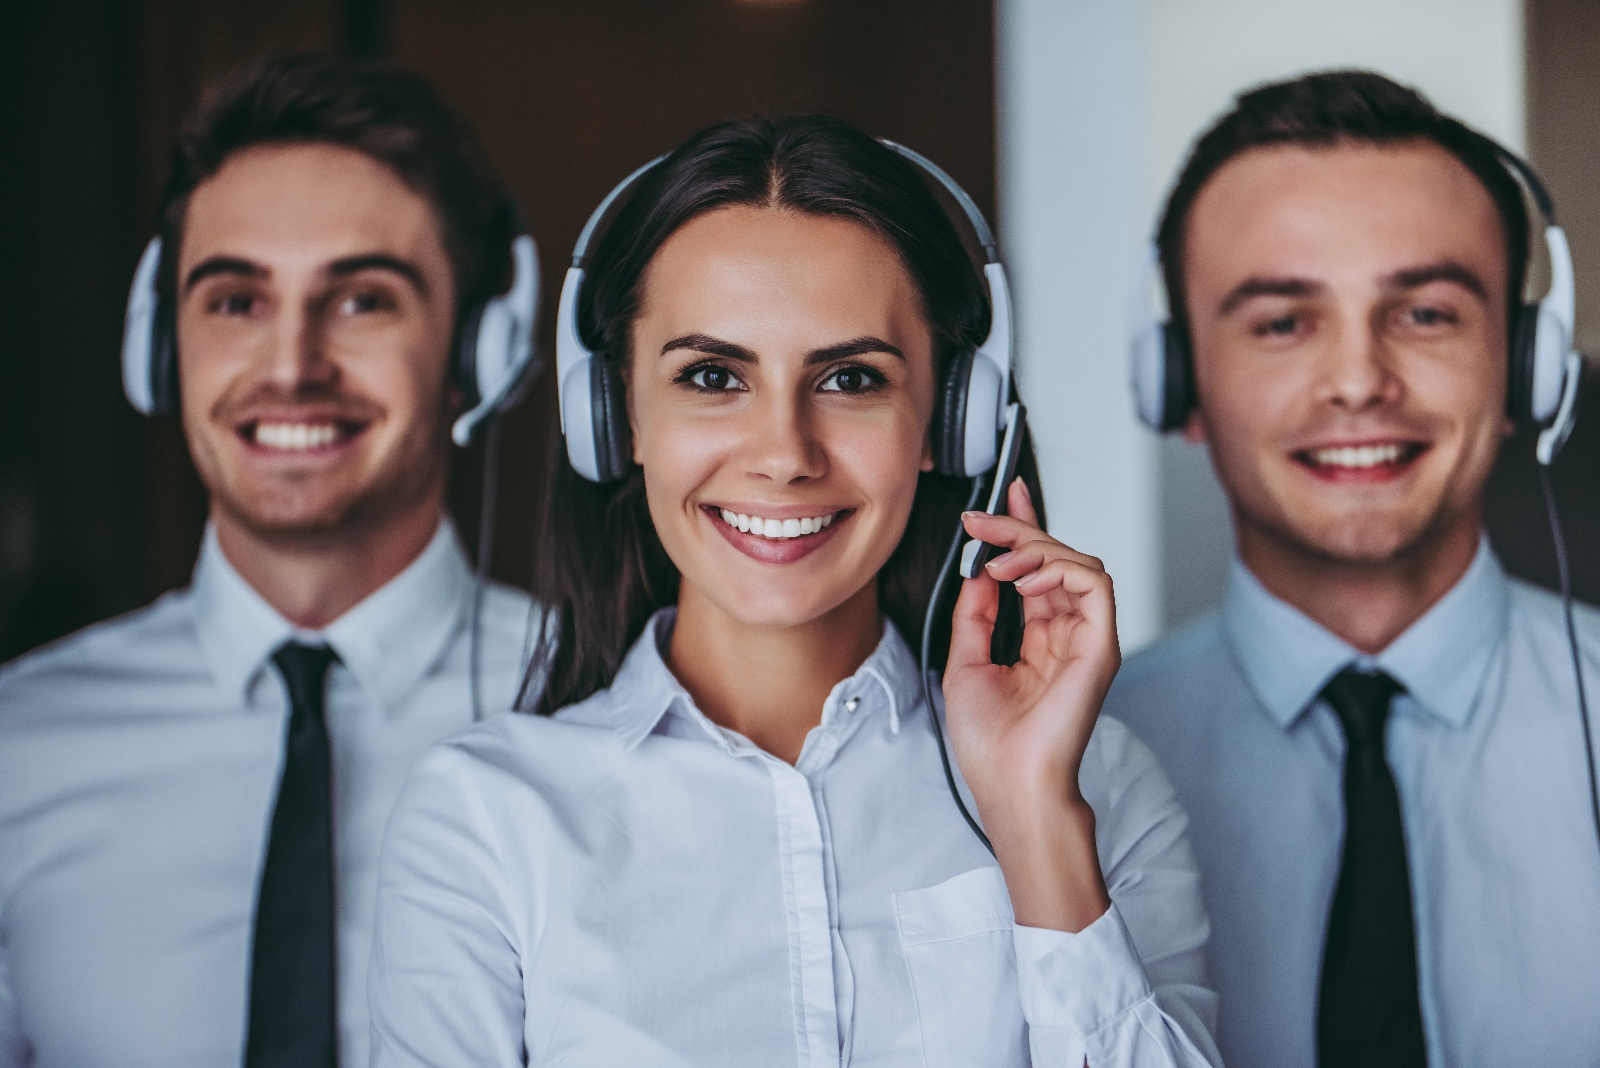 Contact Center Managed Services Team